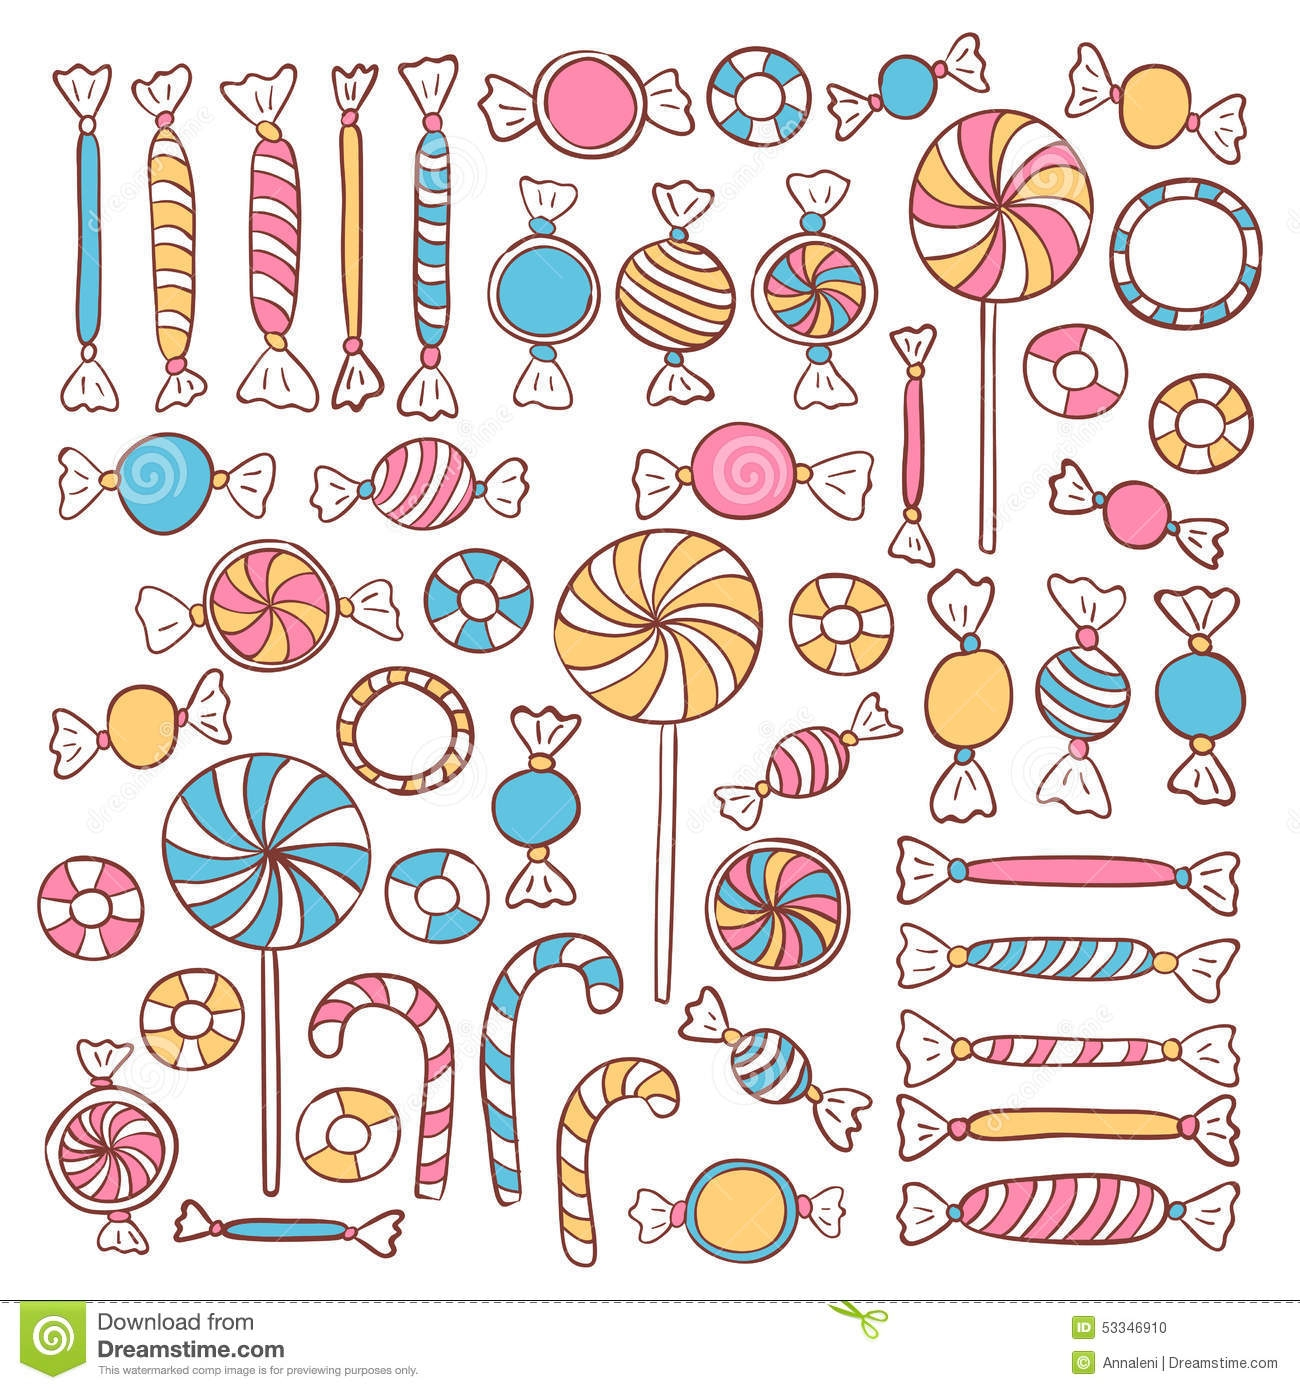 candy skull coloring pages - stock illustration doodle can s sweets hand drawn objects set vector food sketch image